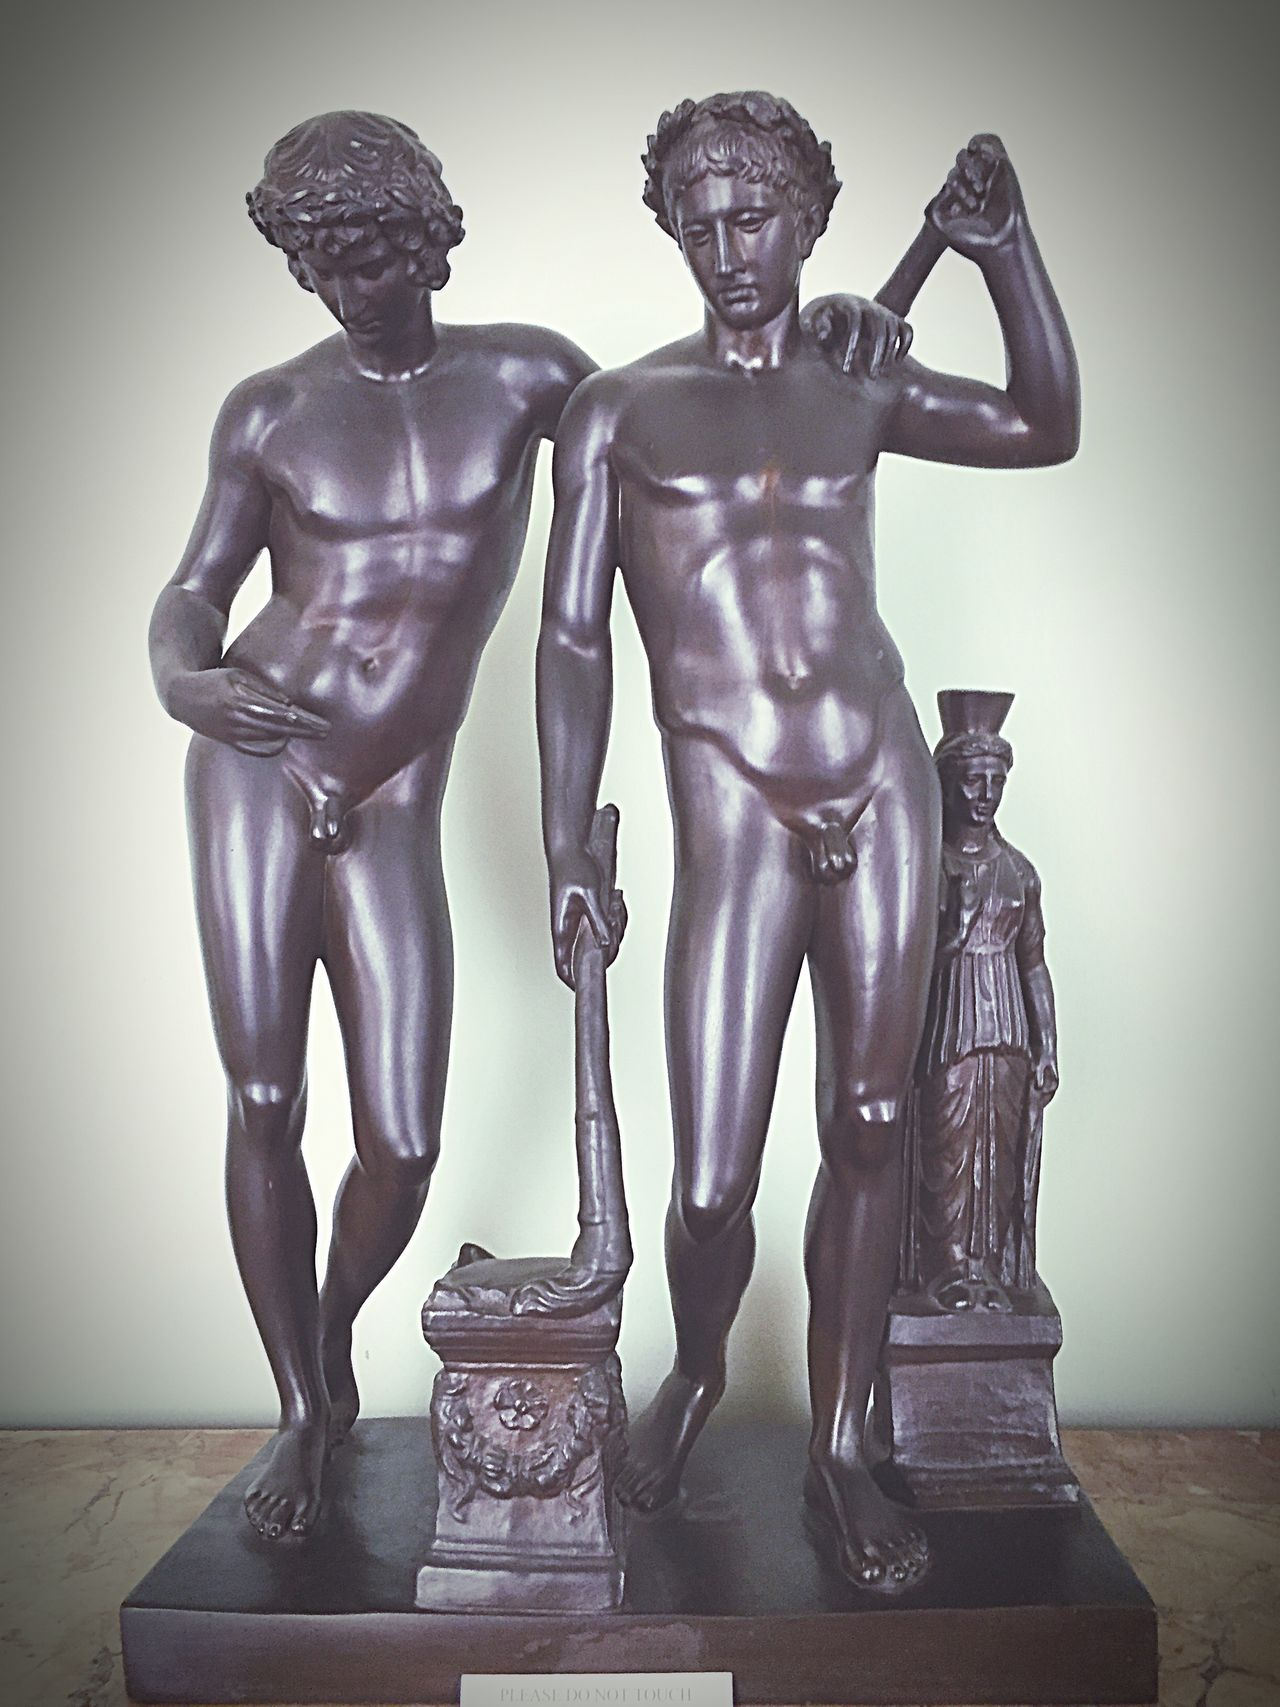 Ancient Sculpture Statue Human Representation Art And Craft Sculpture Man Made Object GenderEquality